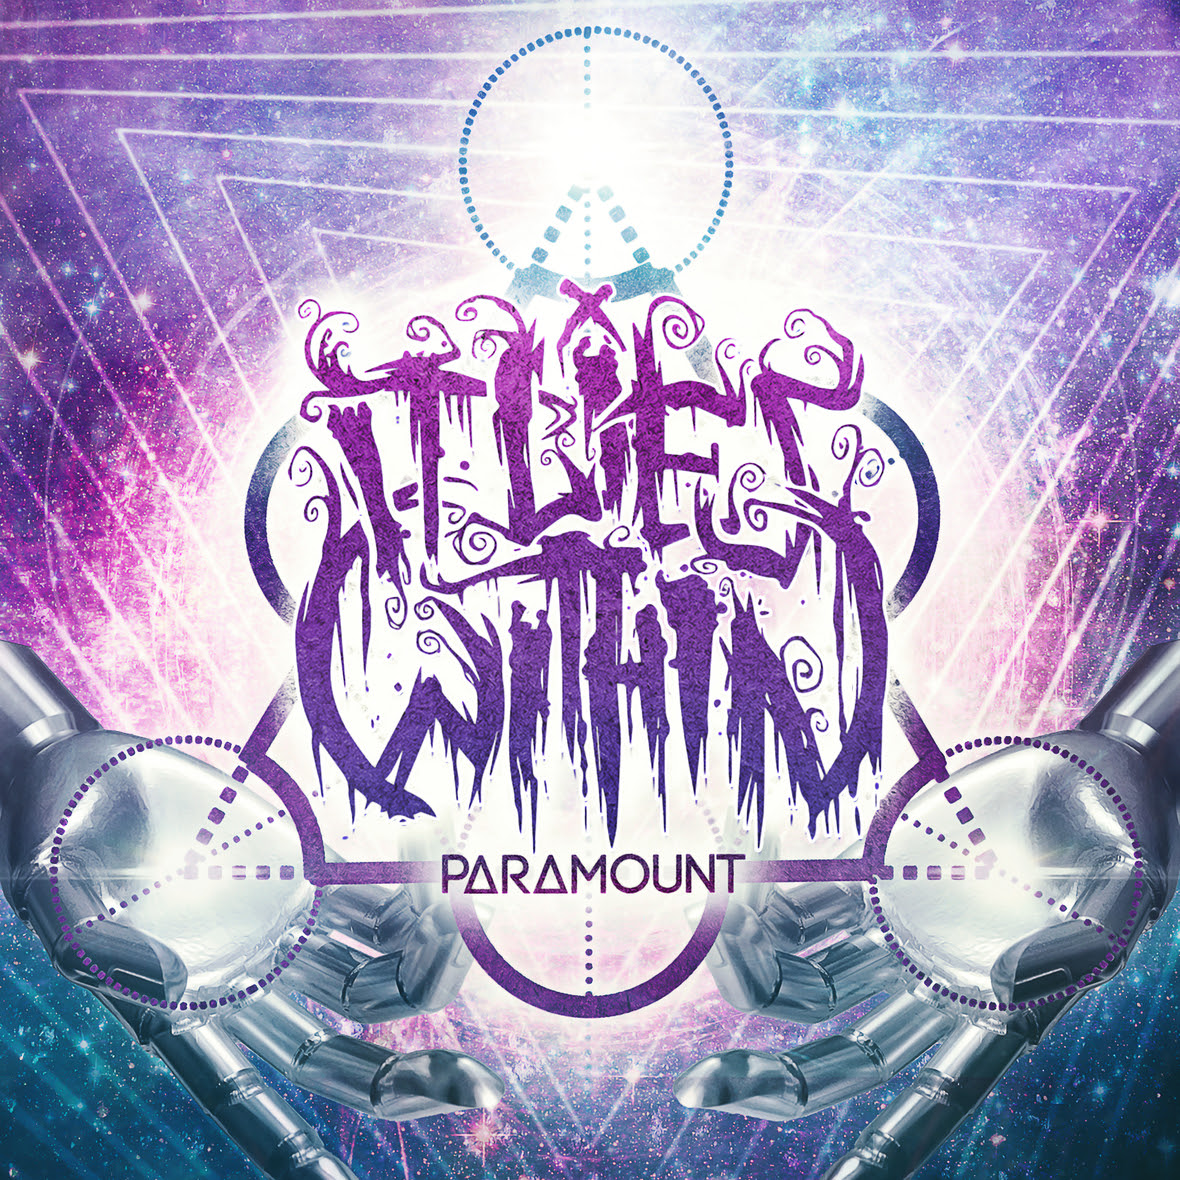 It Lies Within Paramount album art